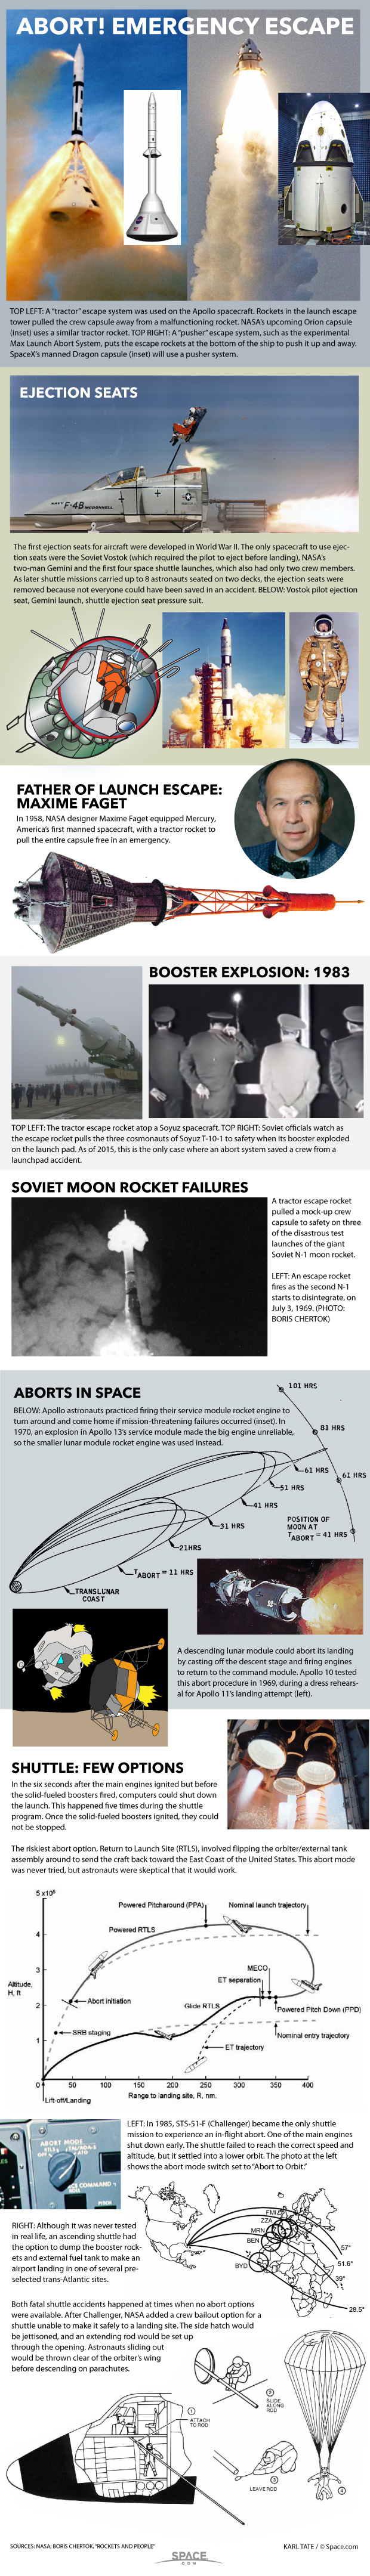 How Risky Spacecraft Launch Aborts Work (Infographic)